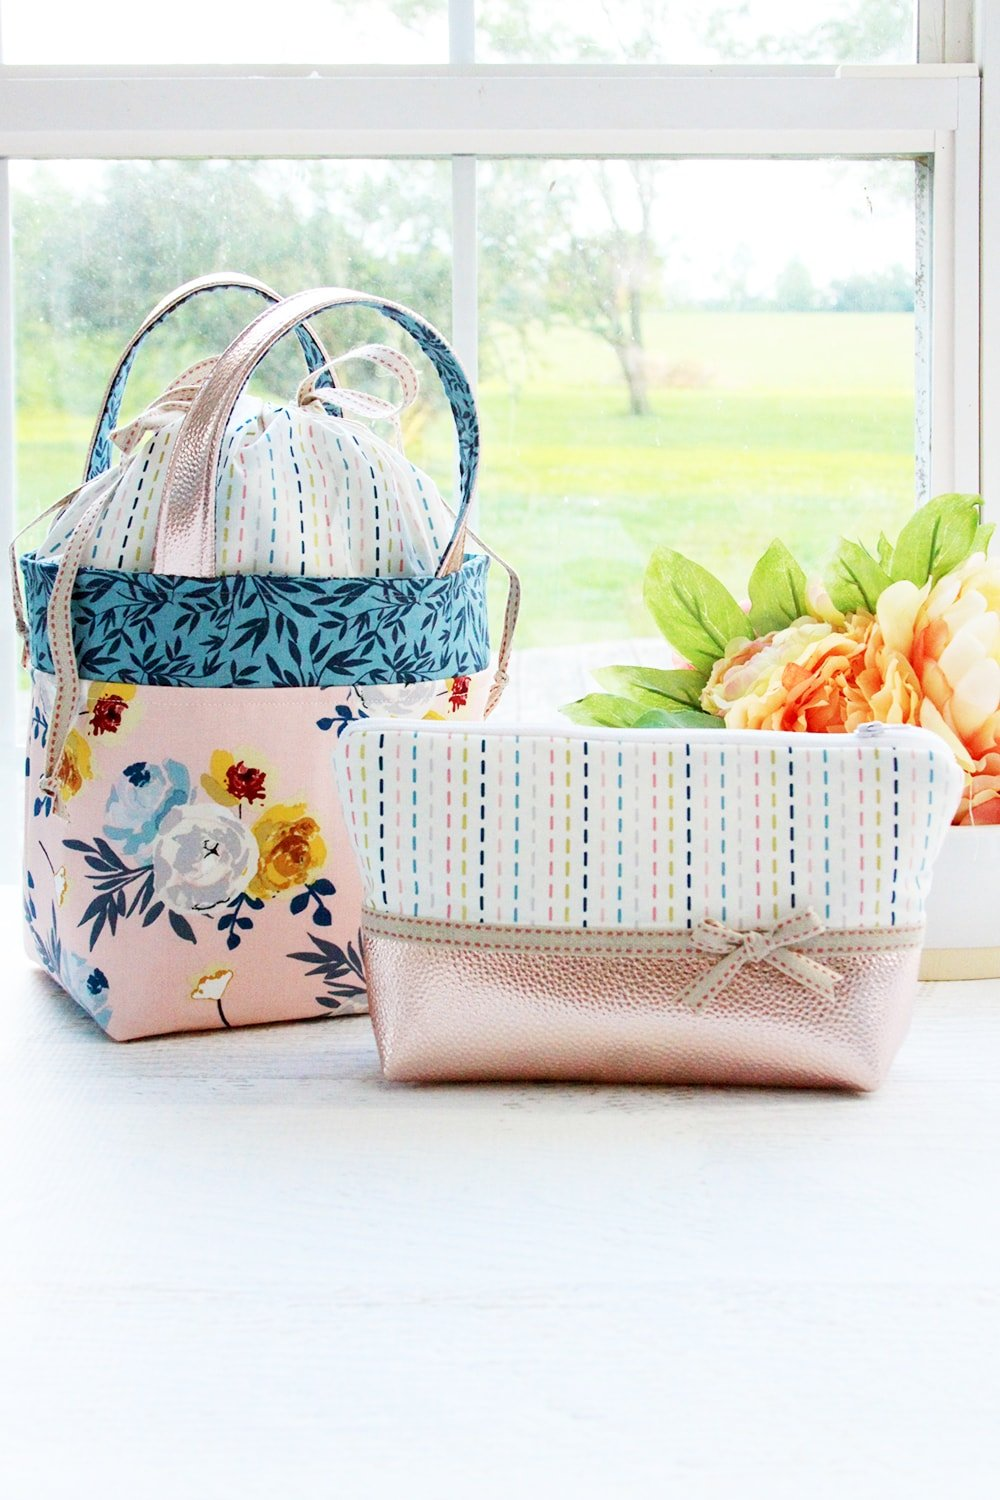 Blooms and bobbins fabric bag set from Flamingo Toes